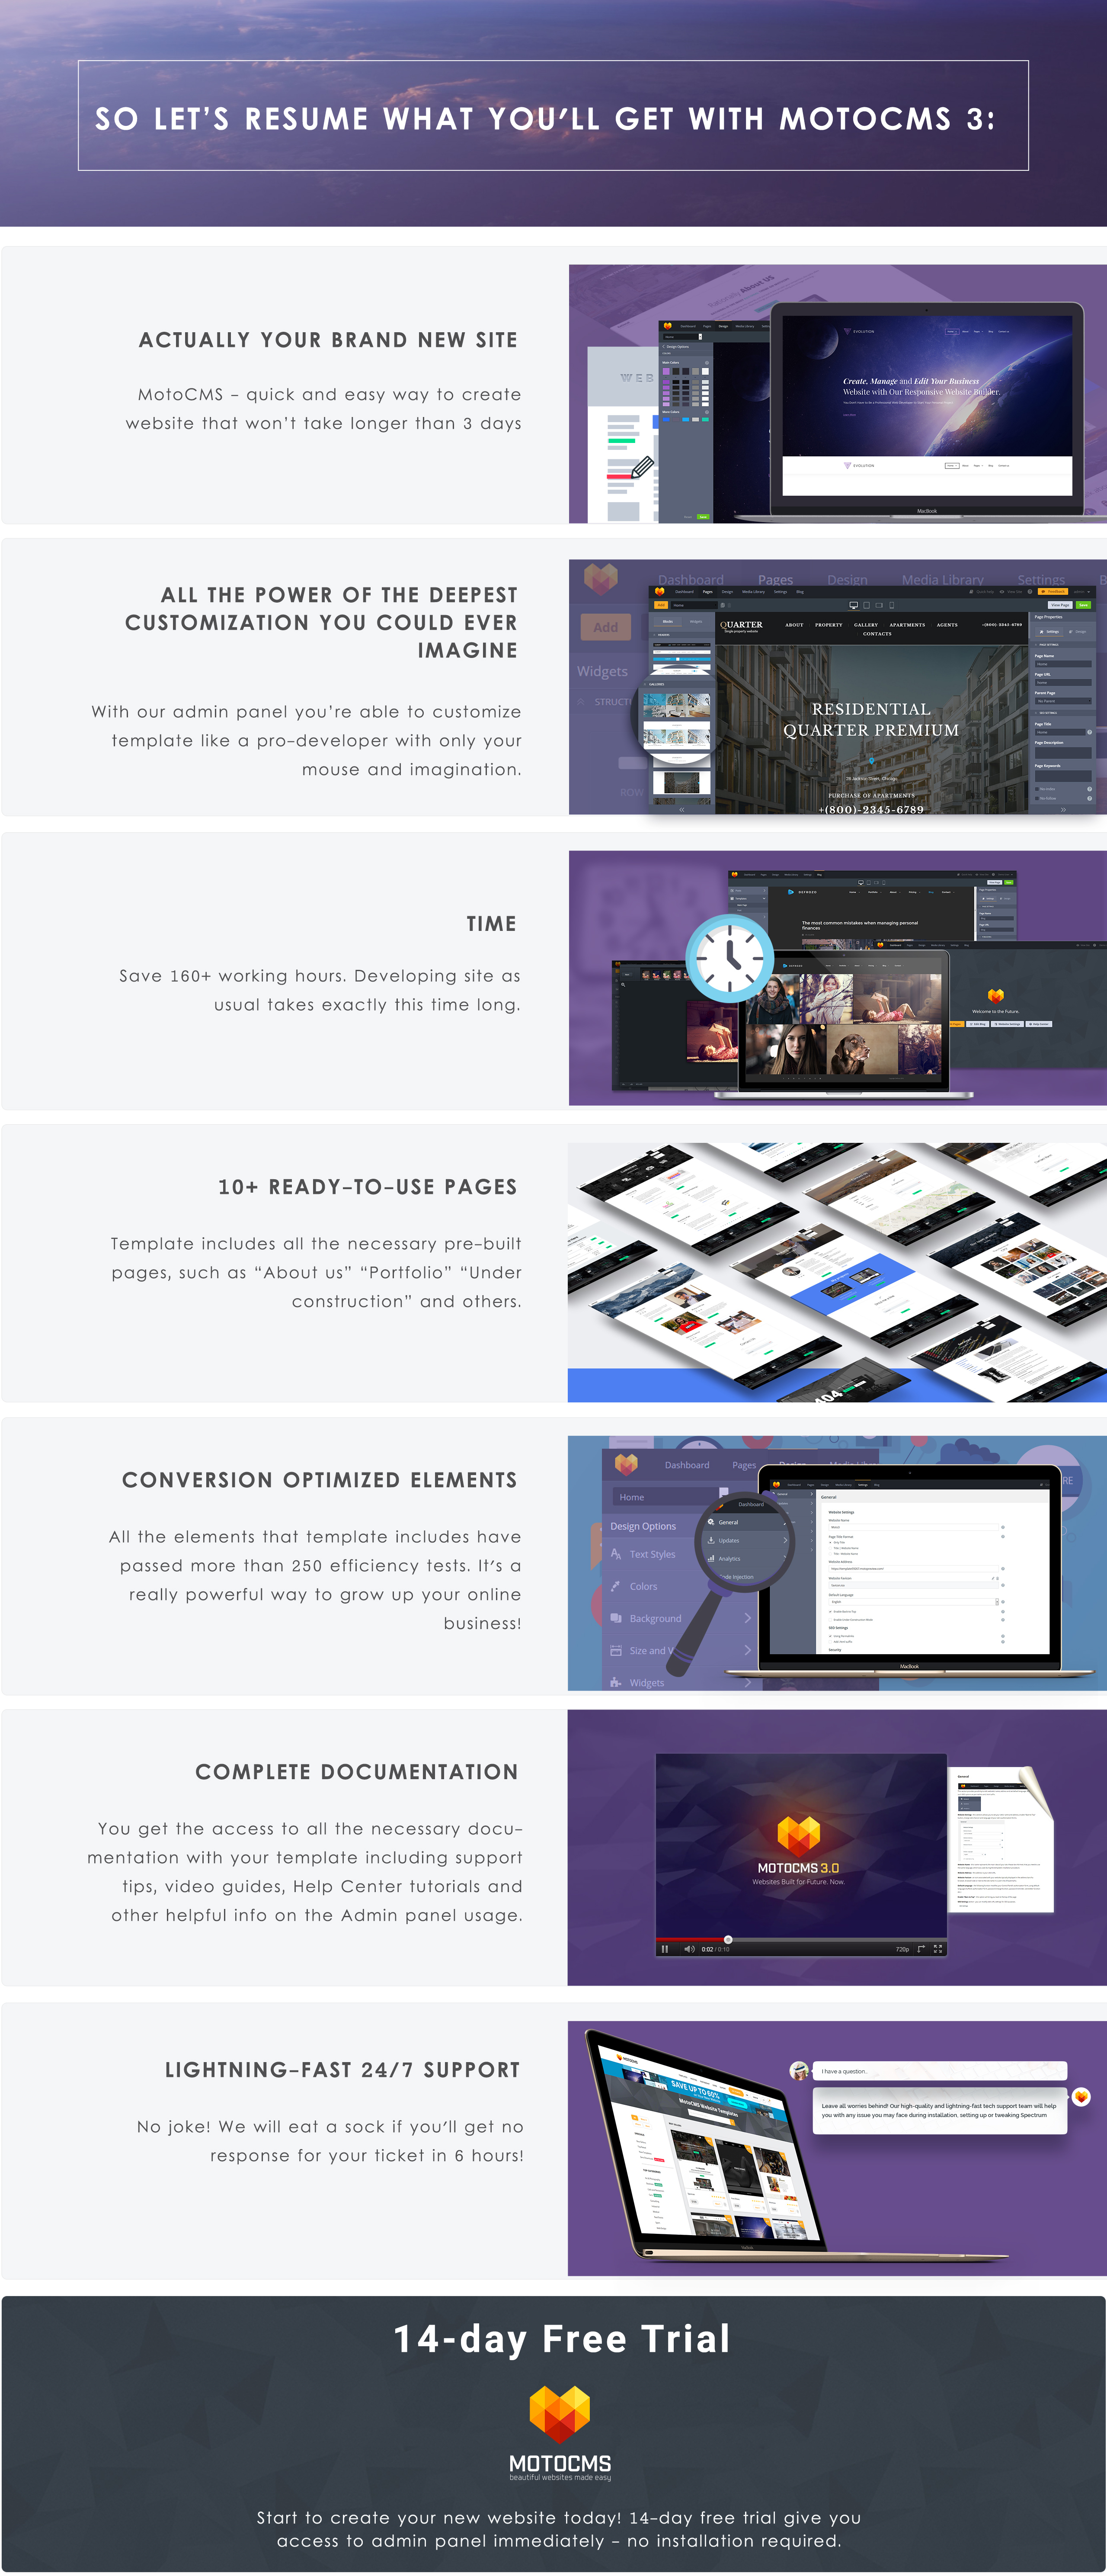 Dino - Natural Science Museum Moto CMS 3 Template